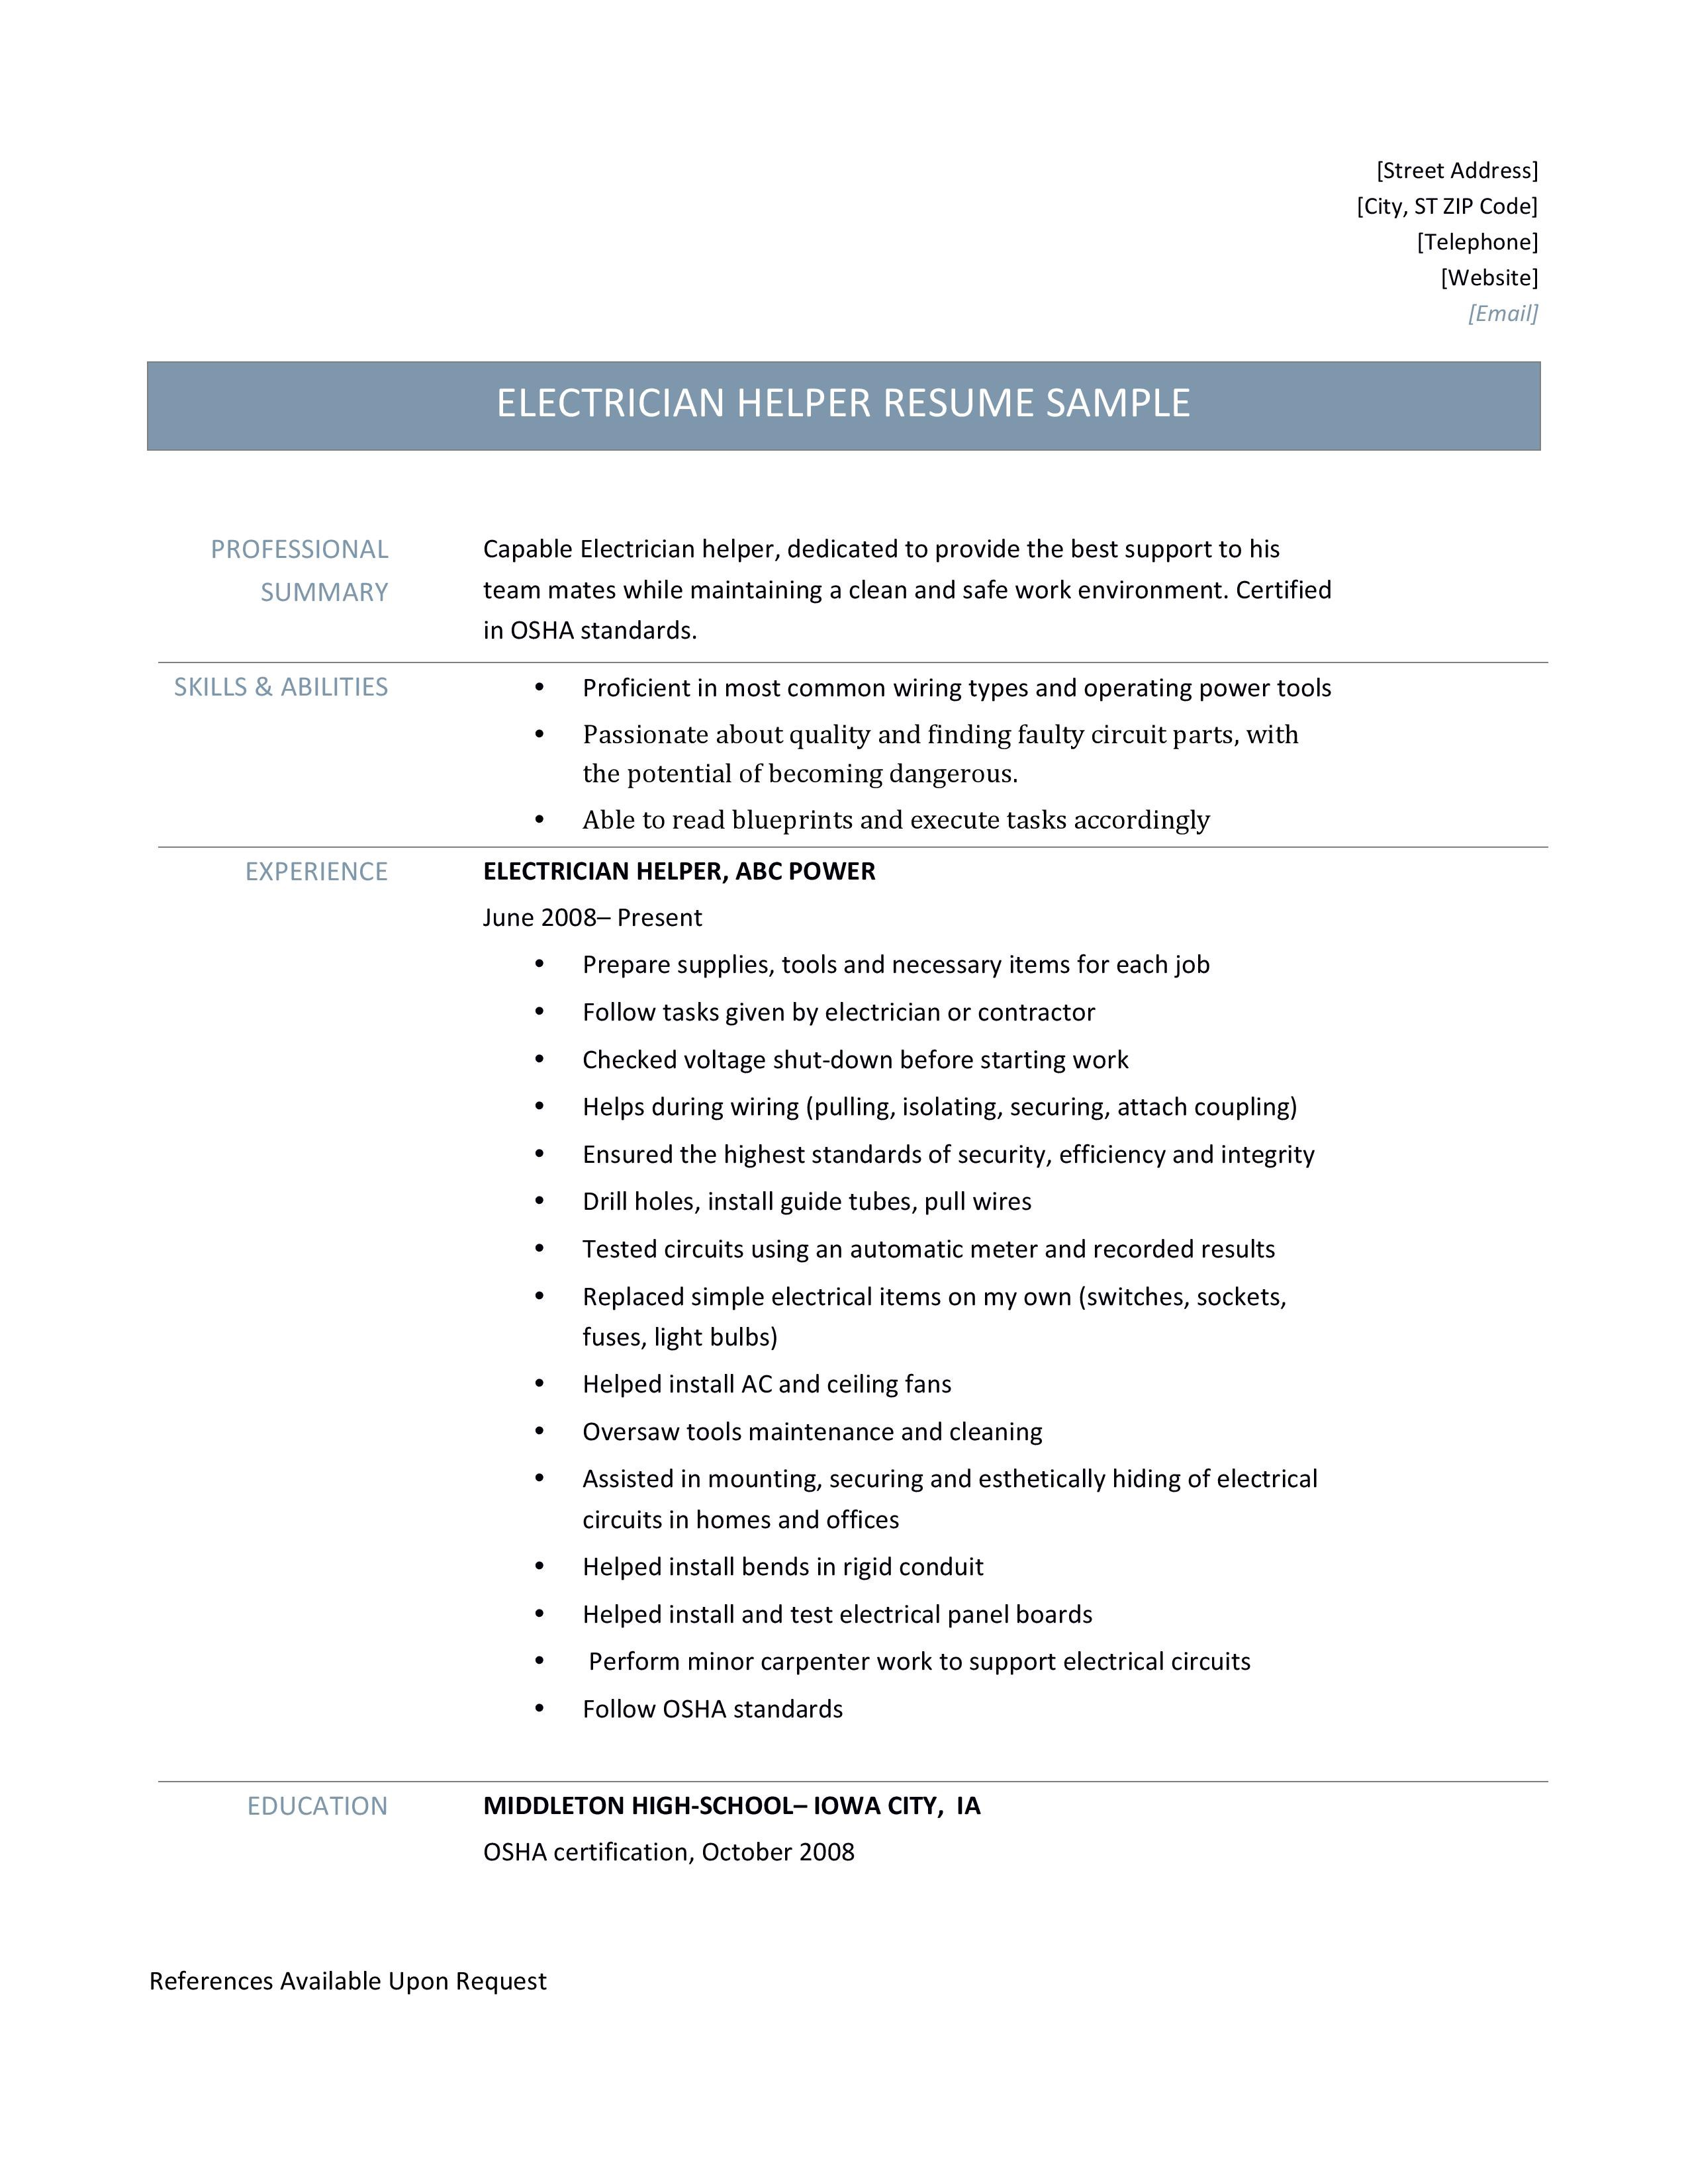 Electrician Helper Resume Samples Tips And Templates